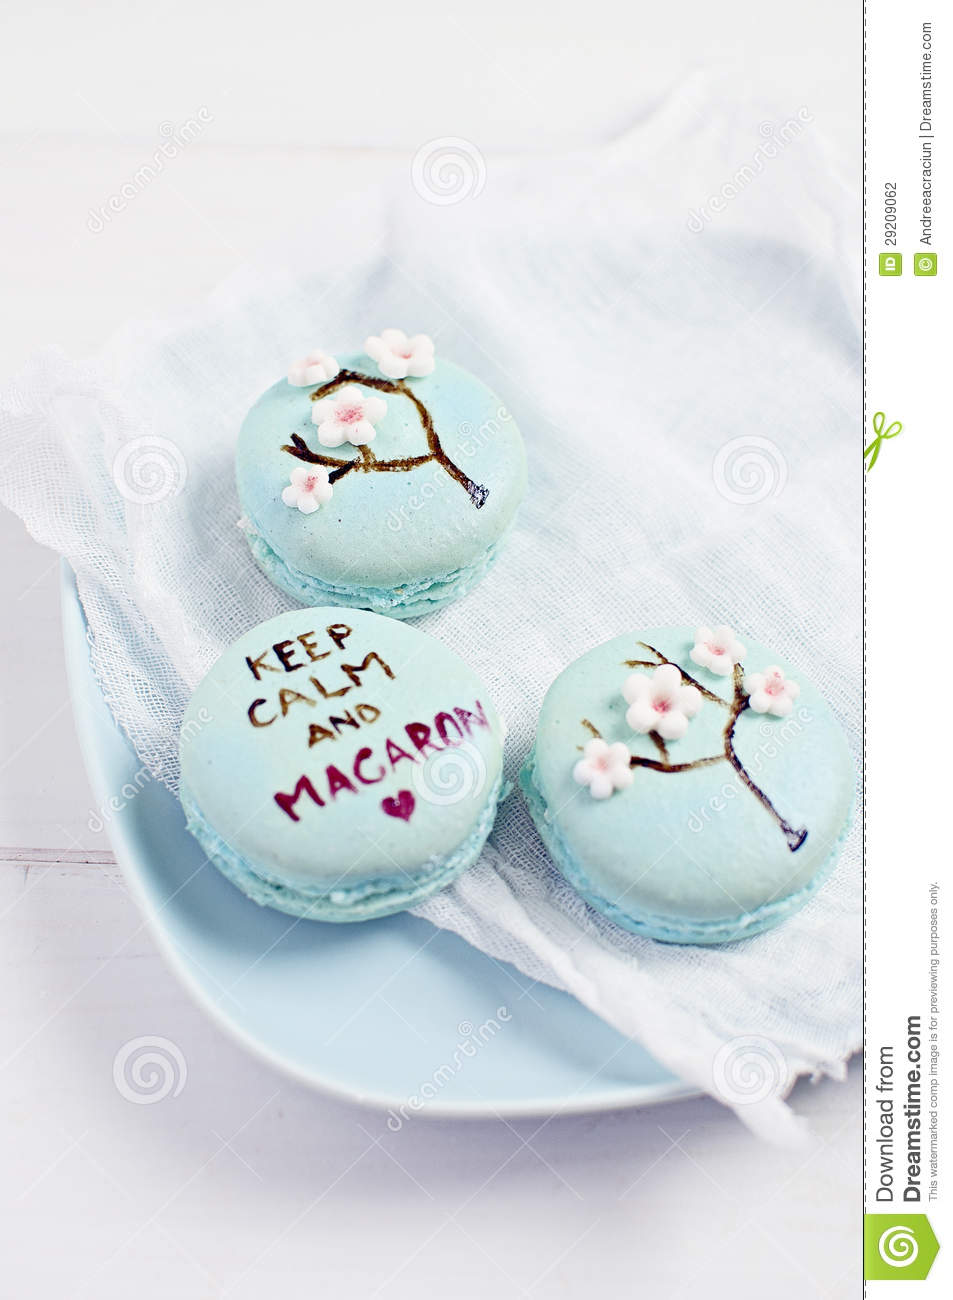 Iphone 7 Water Wallpaper Wedding Macarons With Fondant Flower Decorations Stock